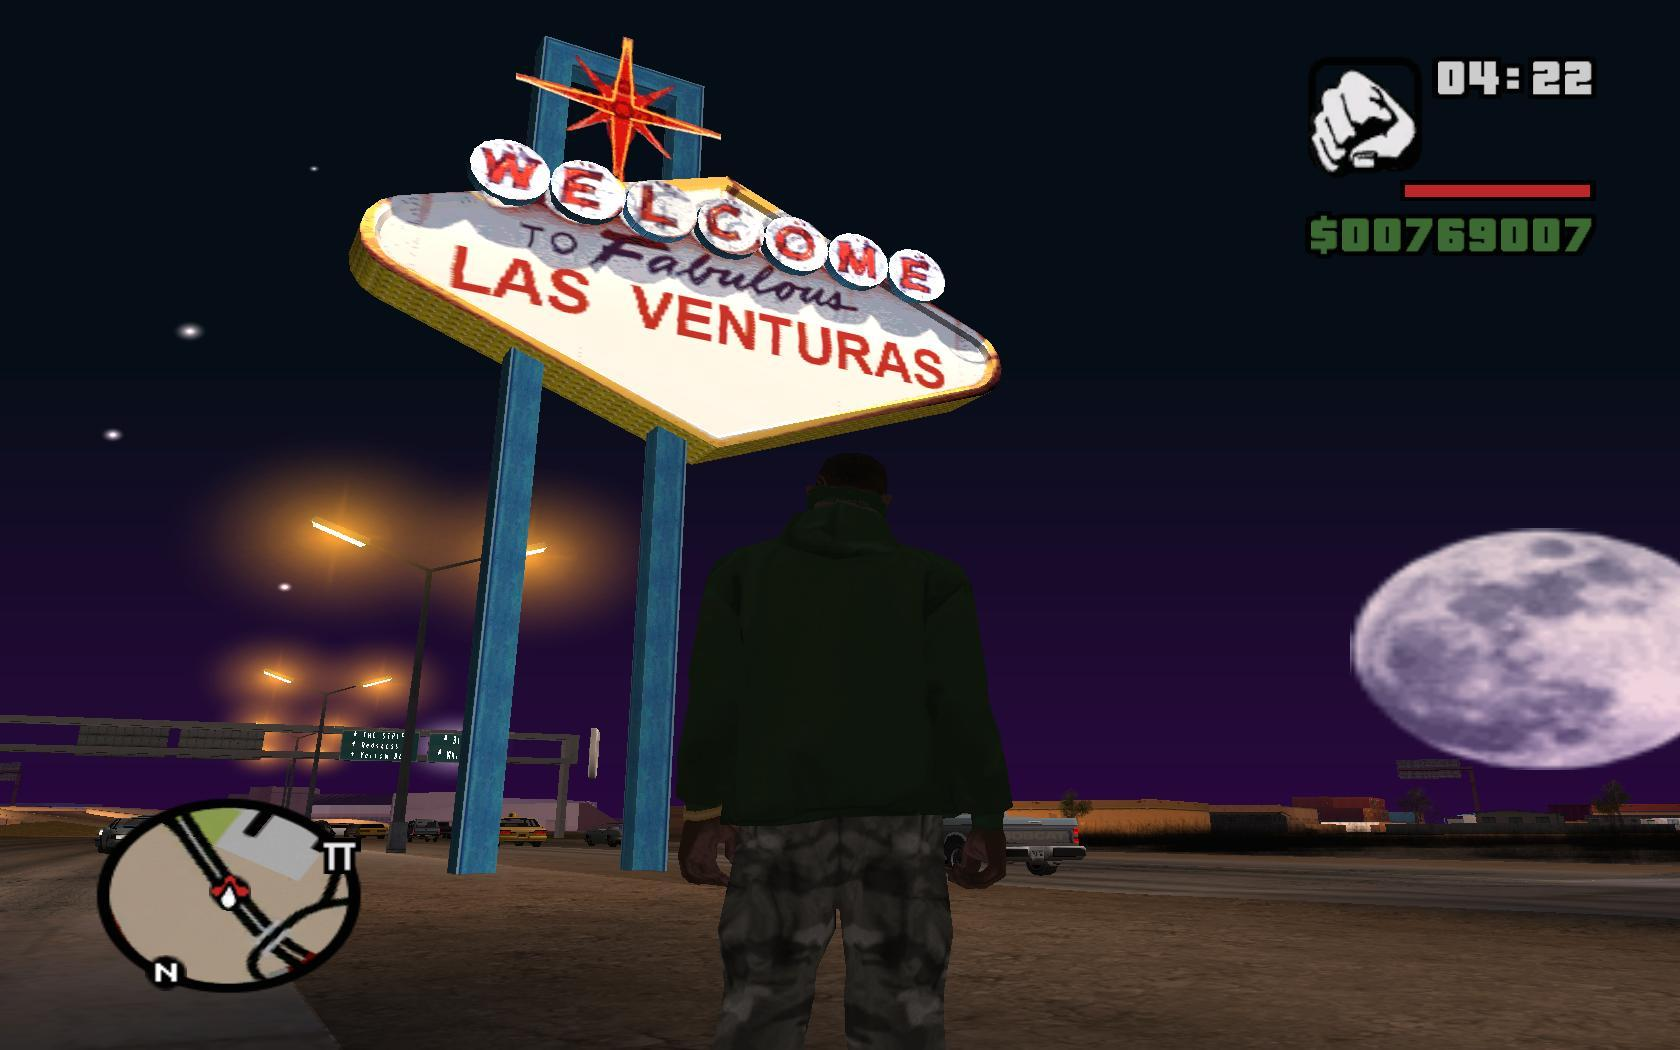 Grand Theft Auto: San Andreas Horseshoe Guide | GamesRadar+